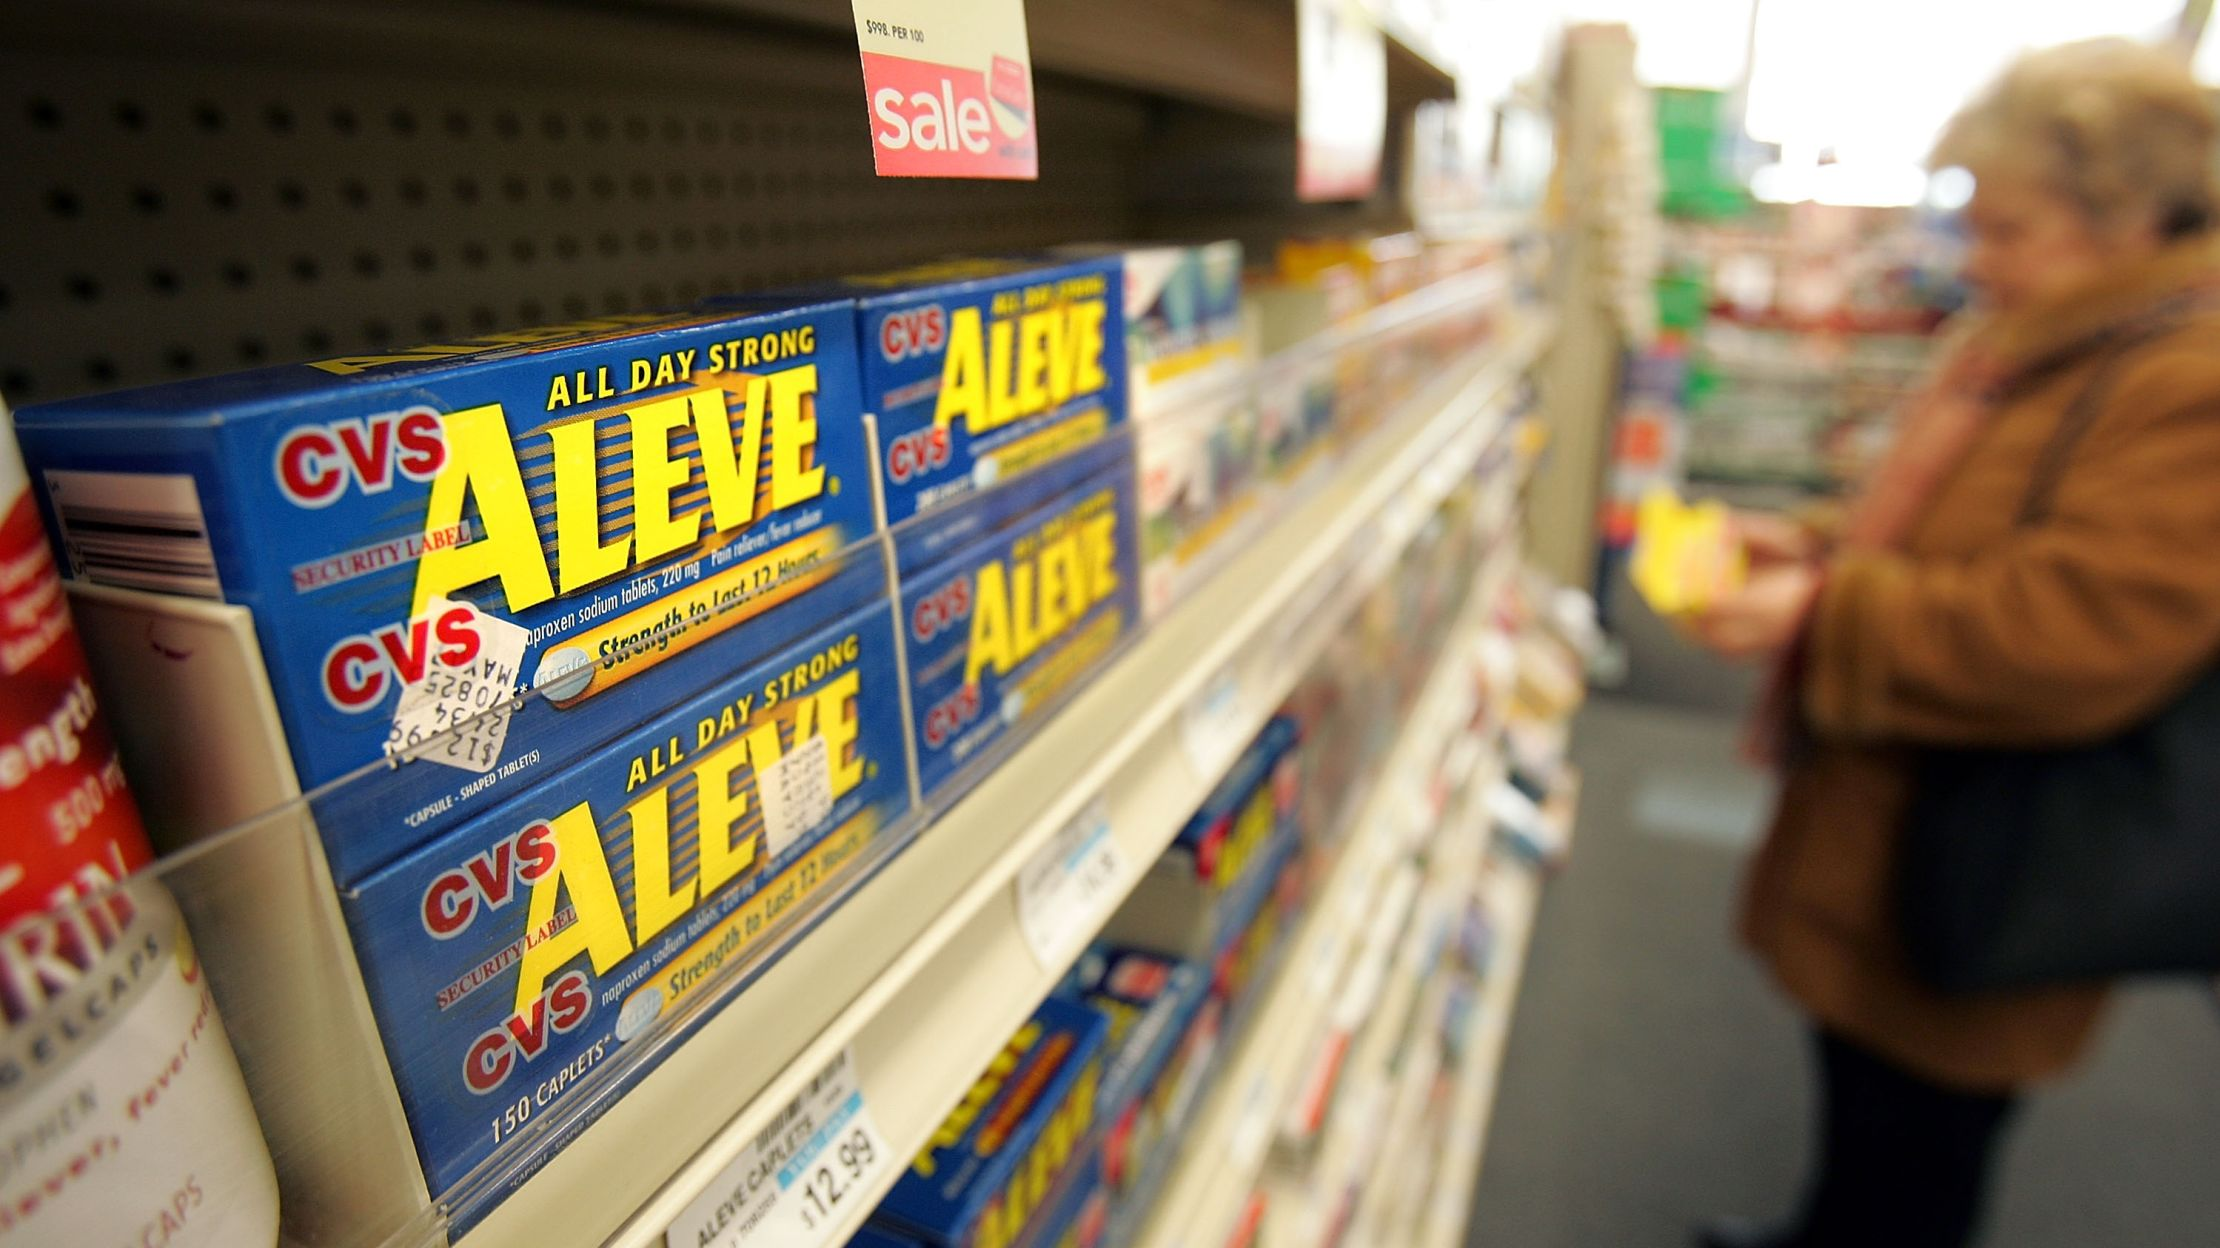 The Difference Between Tylenol, Aspirin, Advil, and Aleve